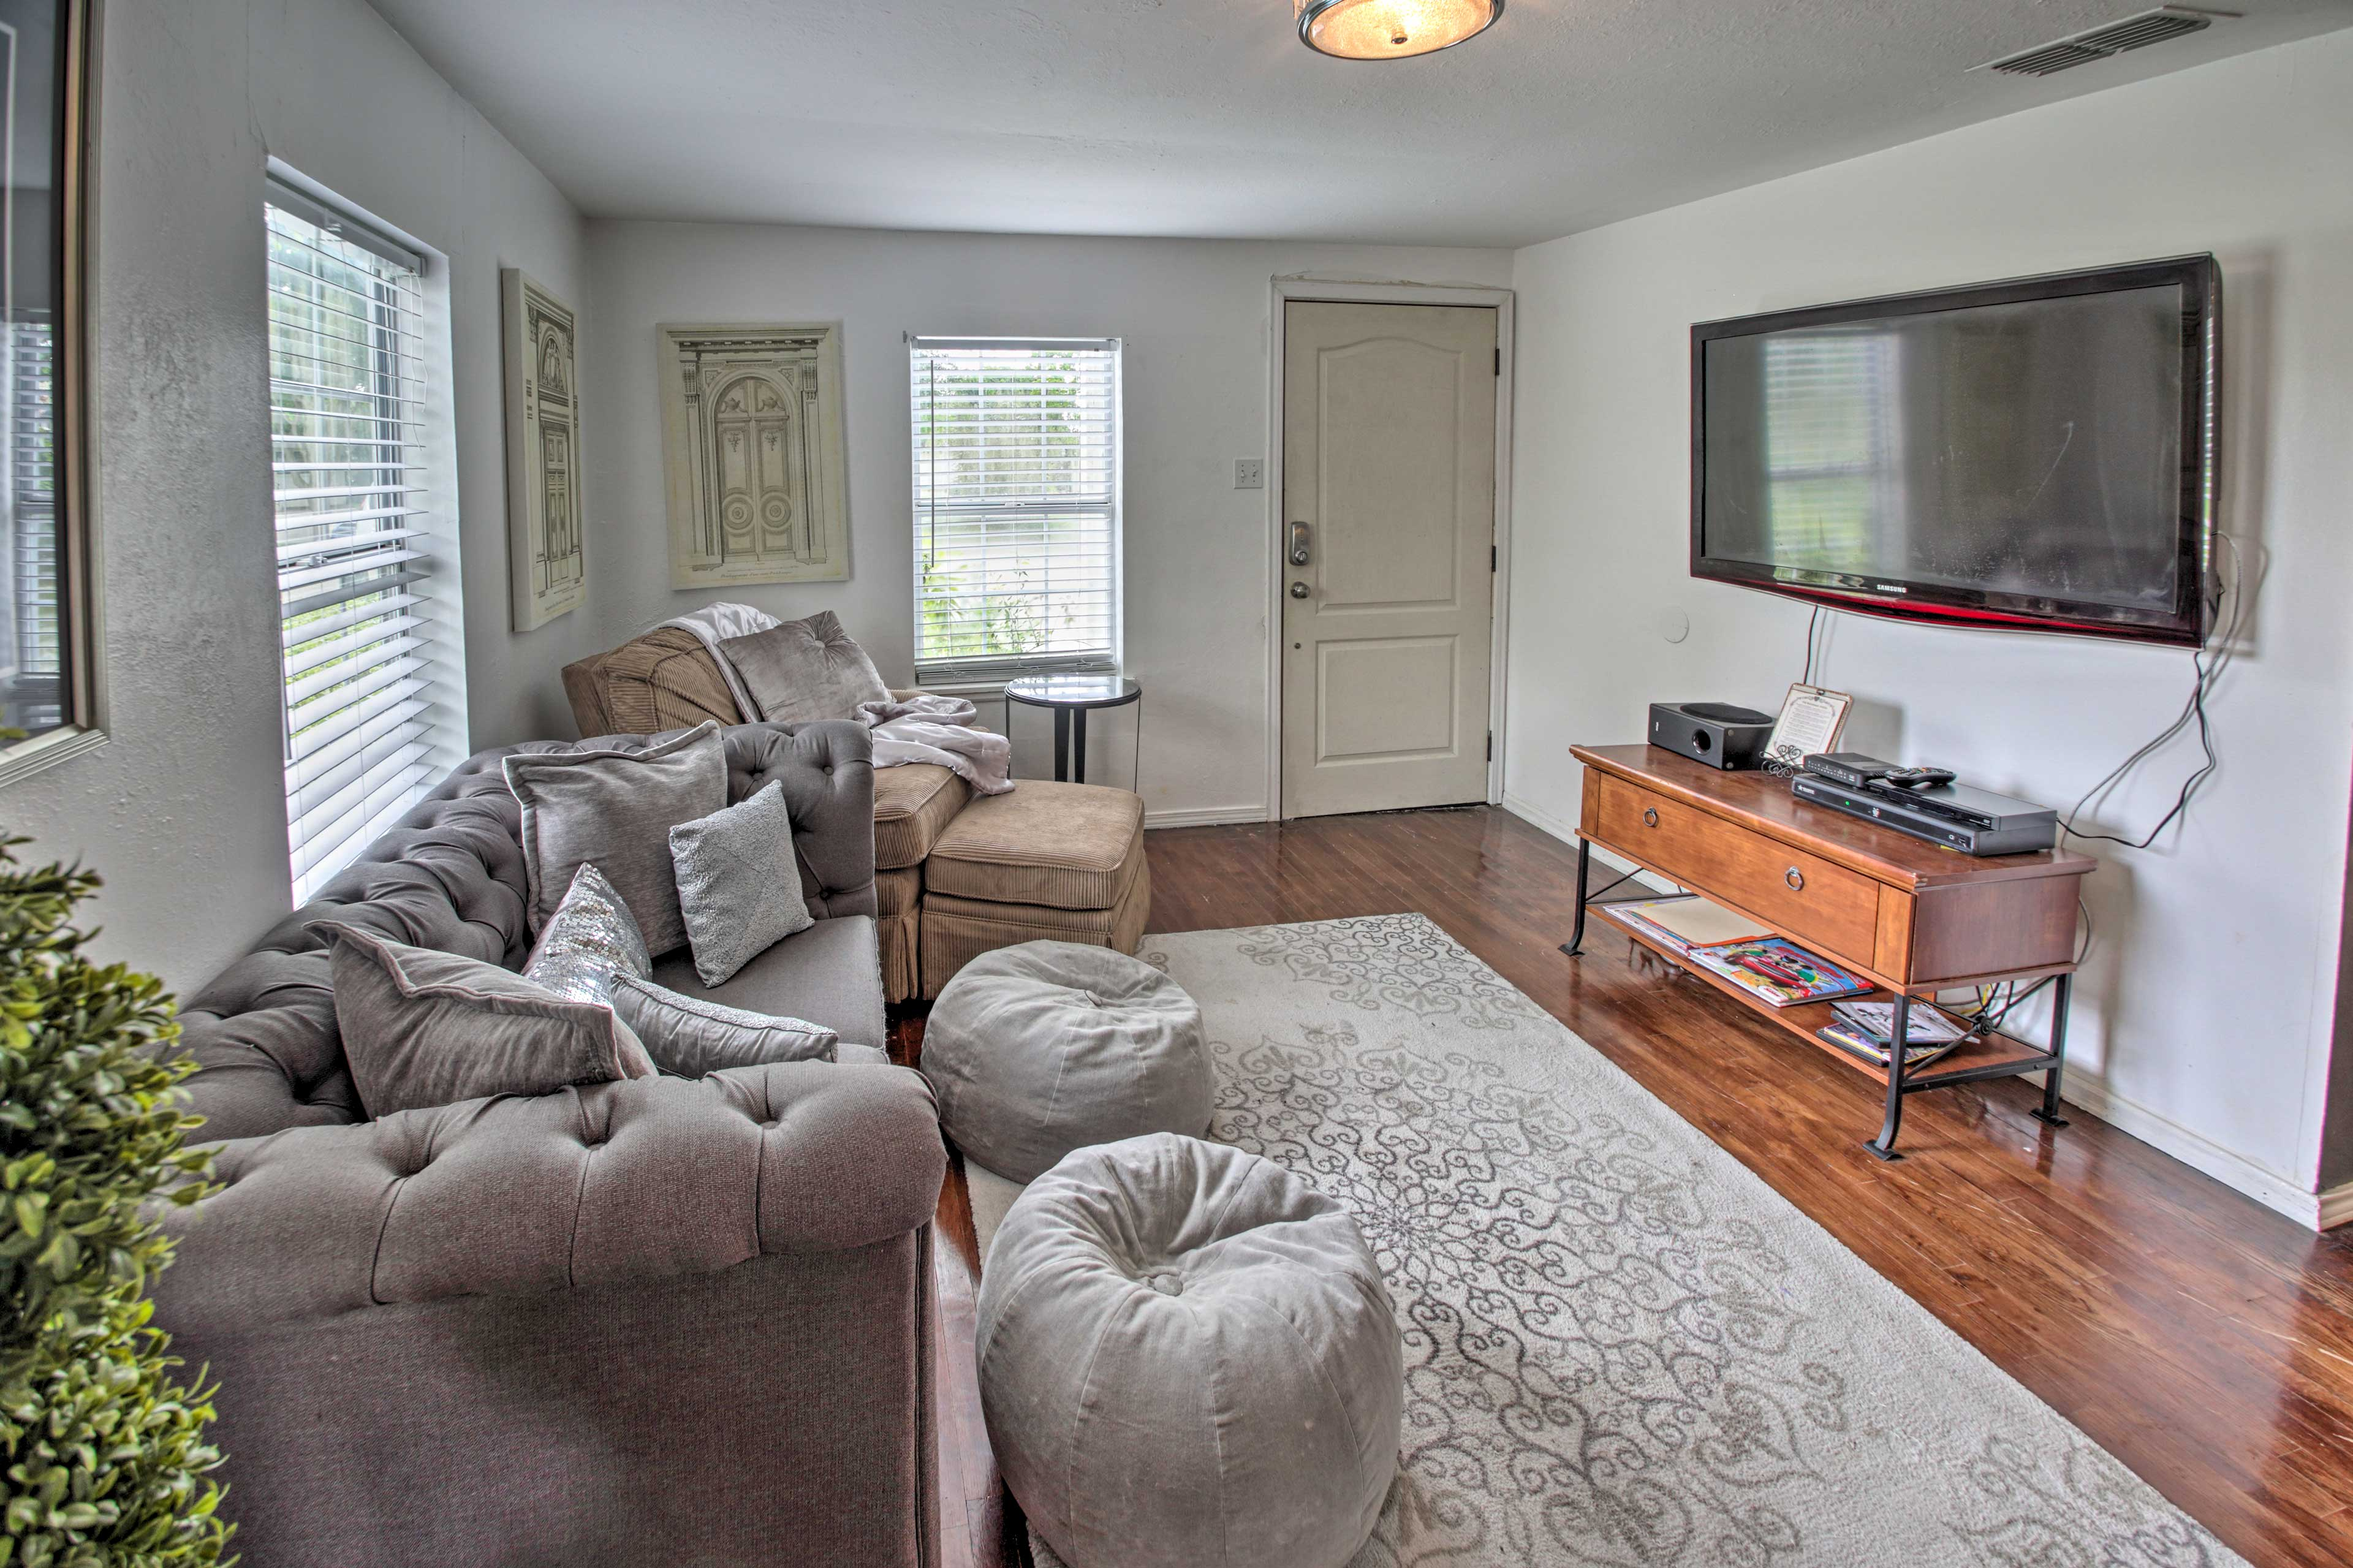 Living Room | Central Air Conditioning/Heating